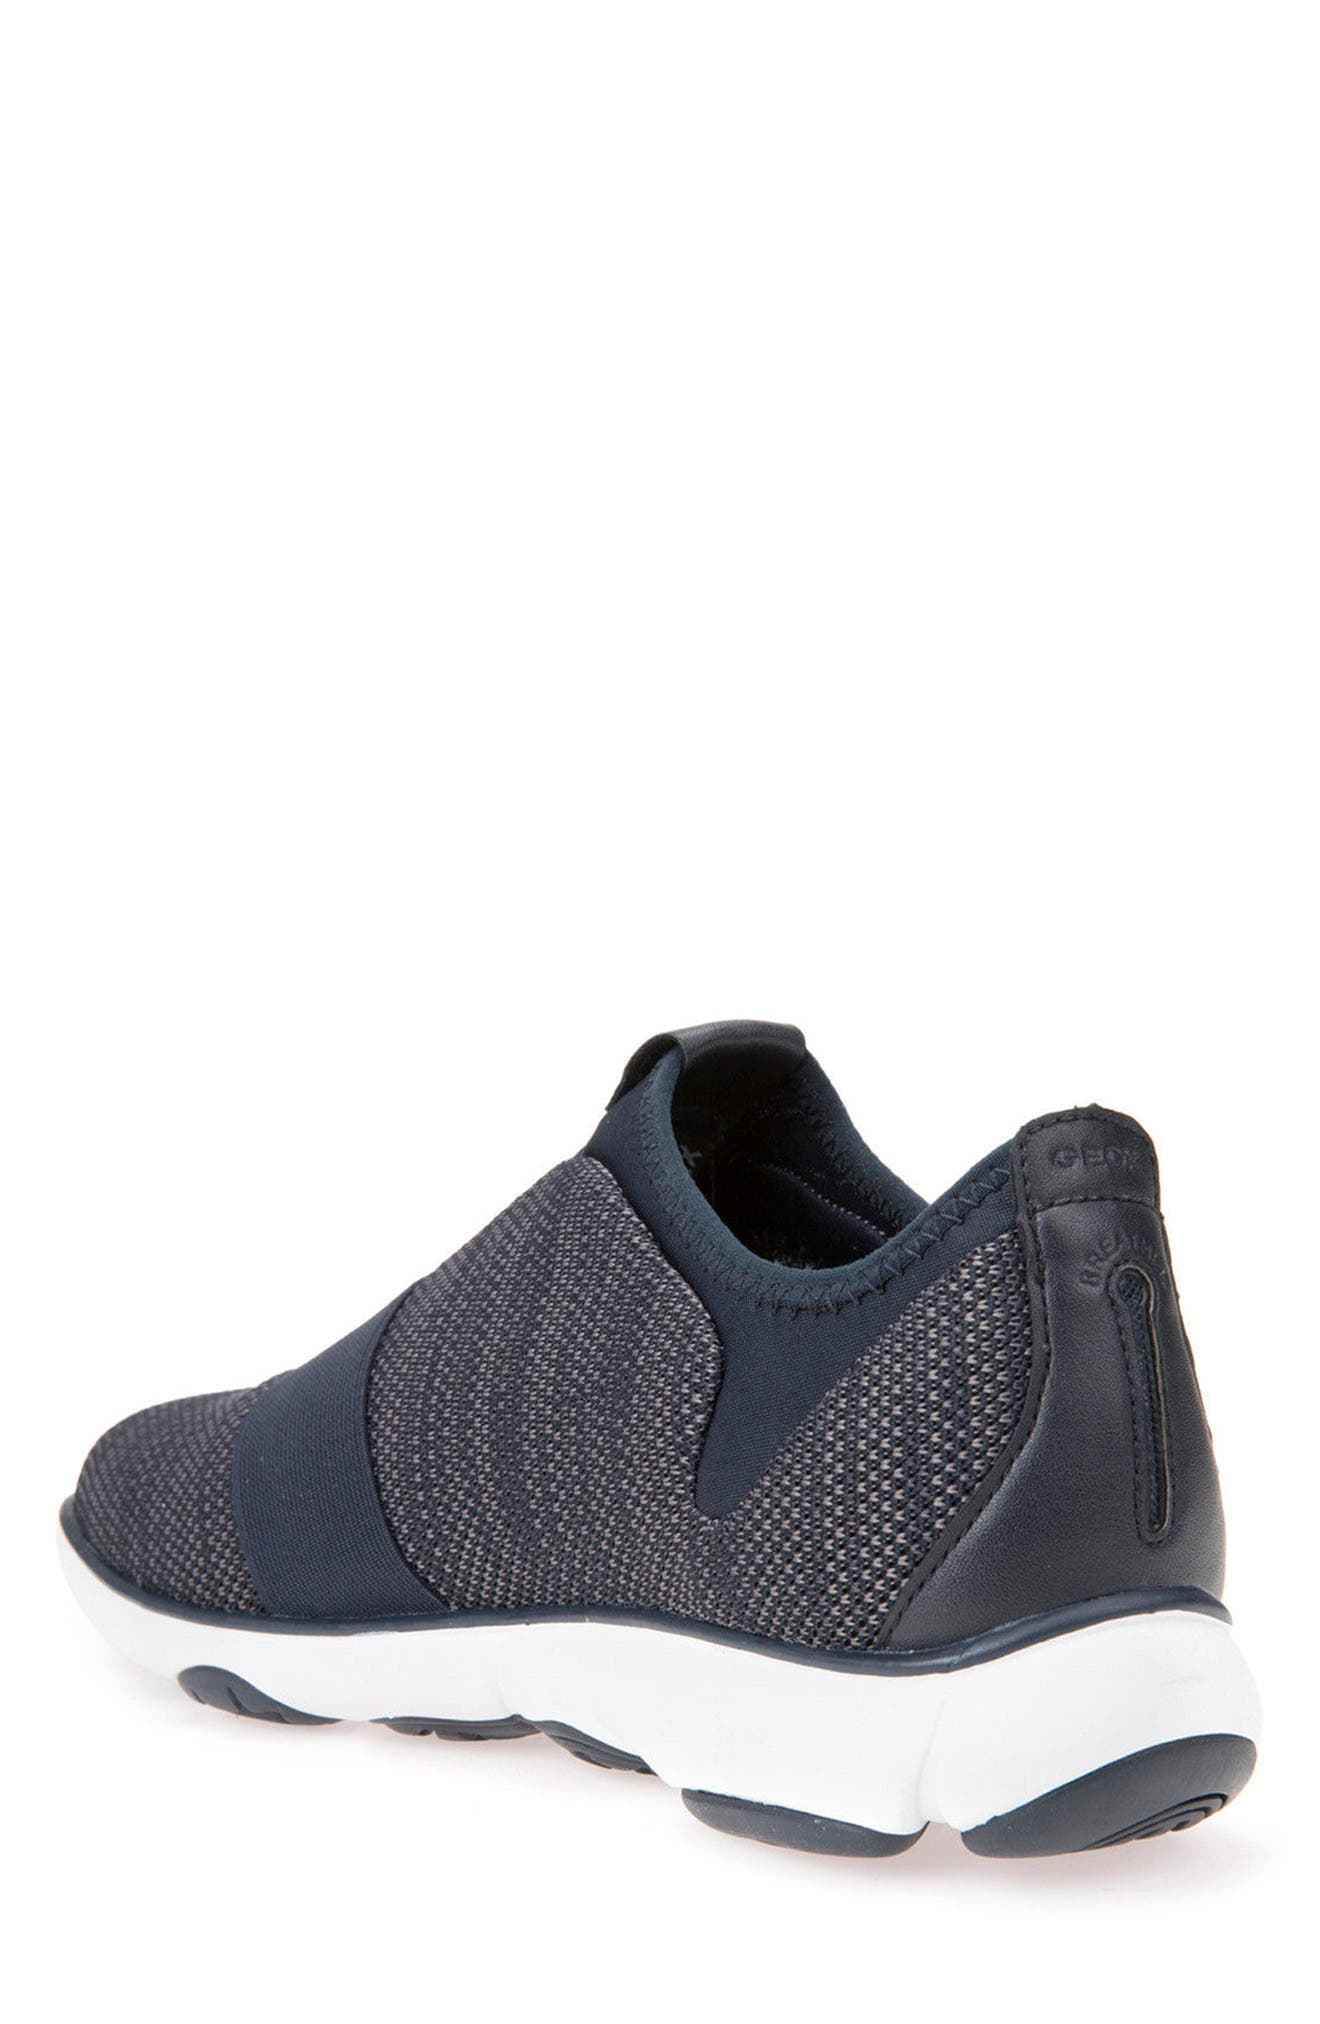 Nebula 45 Banded Slip-On Sneaker,                             Alternate thumbnail 2, color,                             Navy